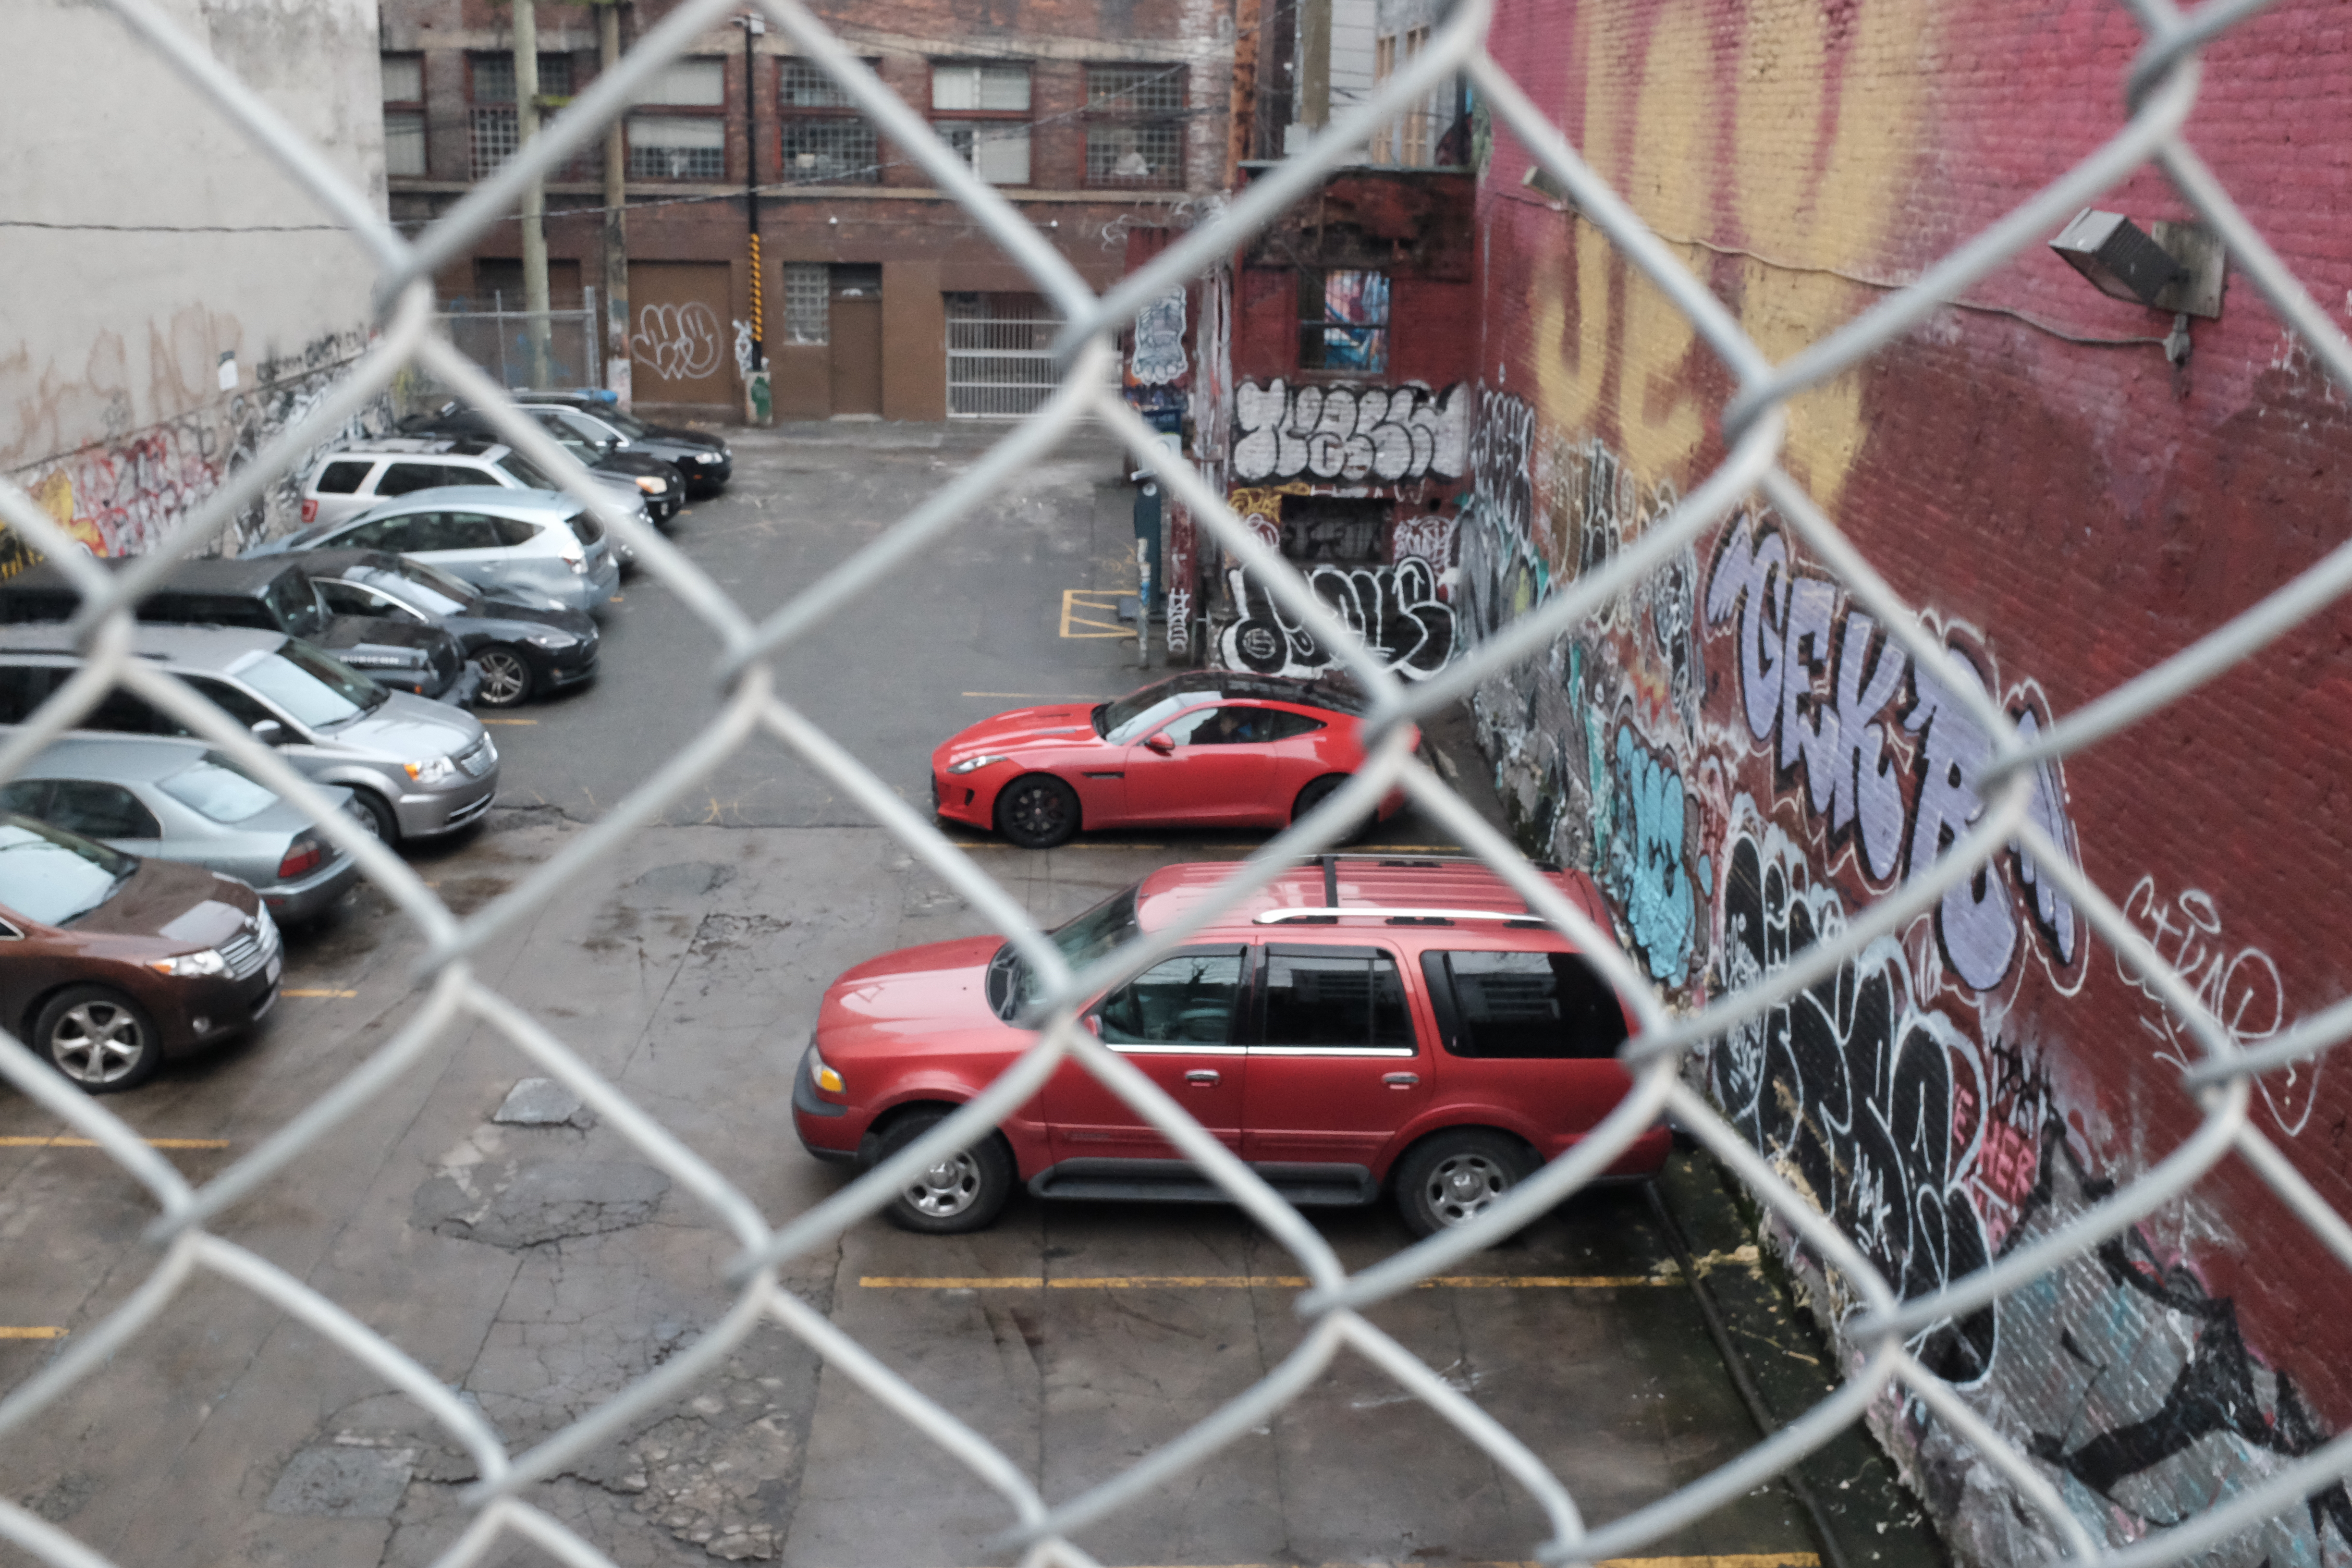 077 - revolver alley parking lot 19January2016 Vancouver X100T oocjpeg, Alley, Graffiti, Vancouver, Revolver, HQ Photo